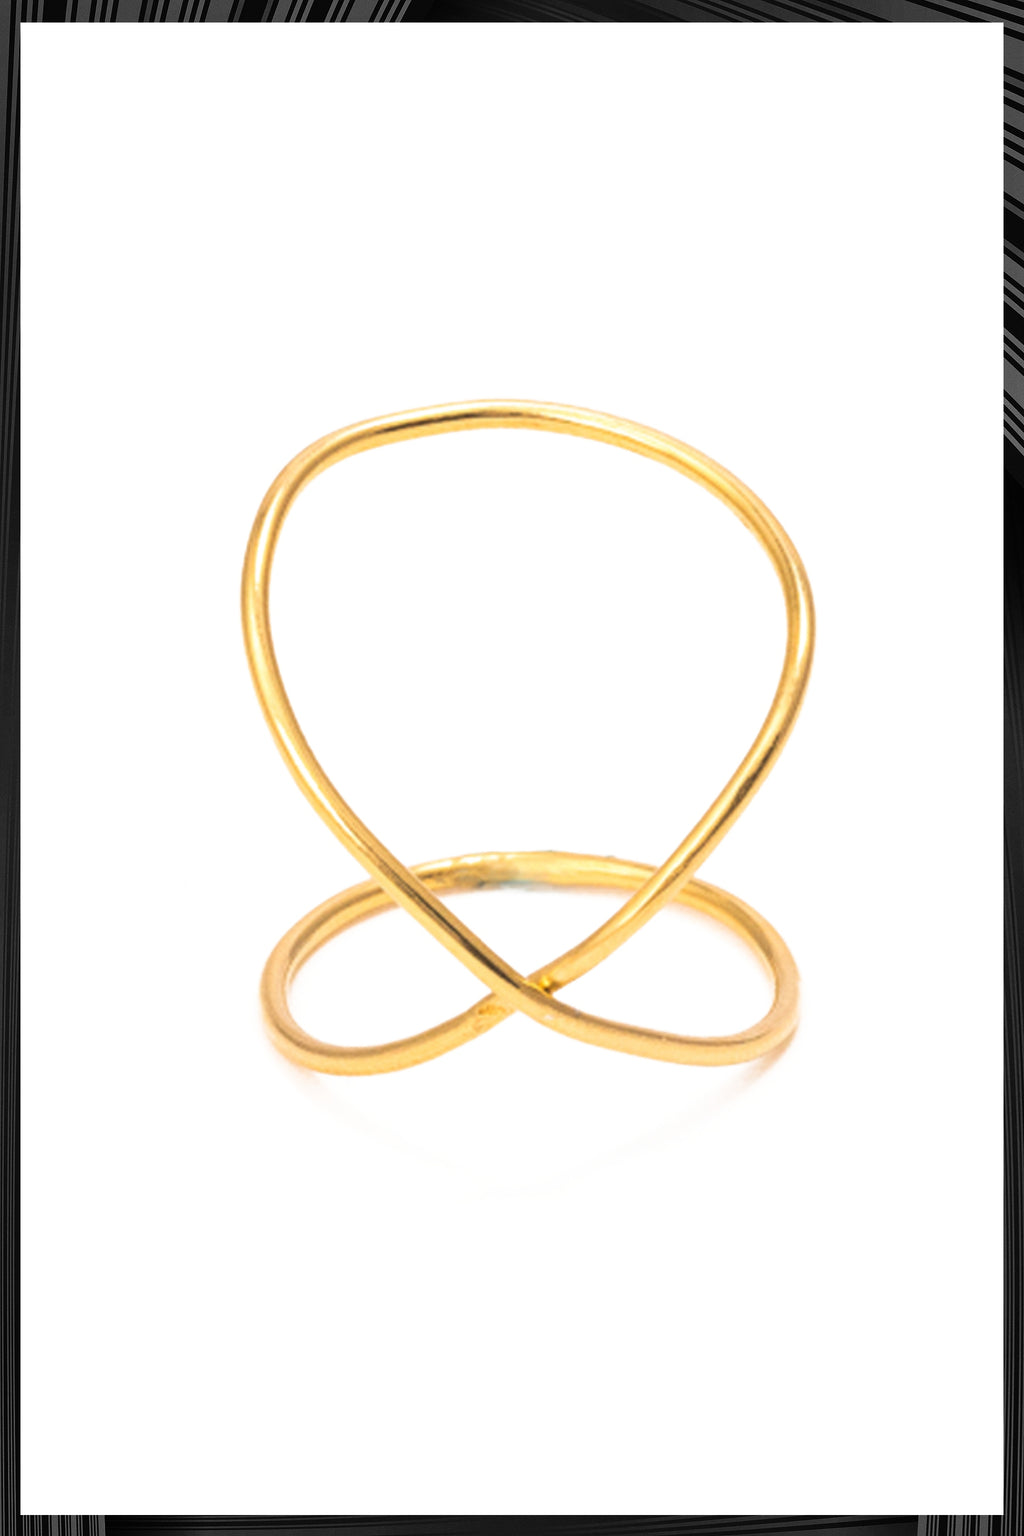 Infinity Ring - Only 1 Left!